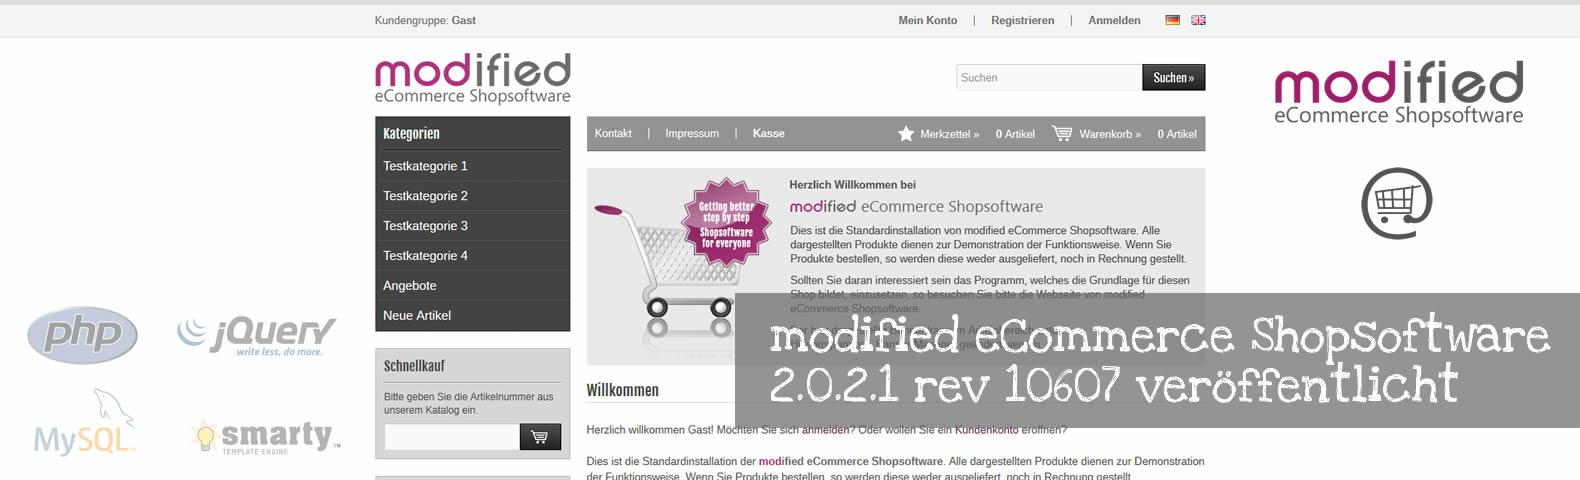 modified eCommerce Shopsoftware 2.0.2.1 rev 10607 veröffentlicht